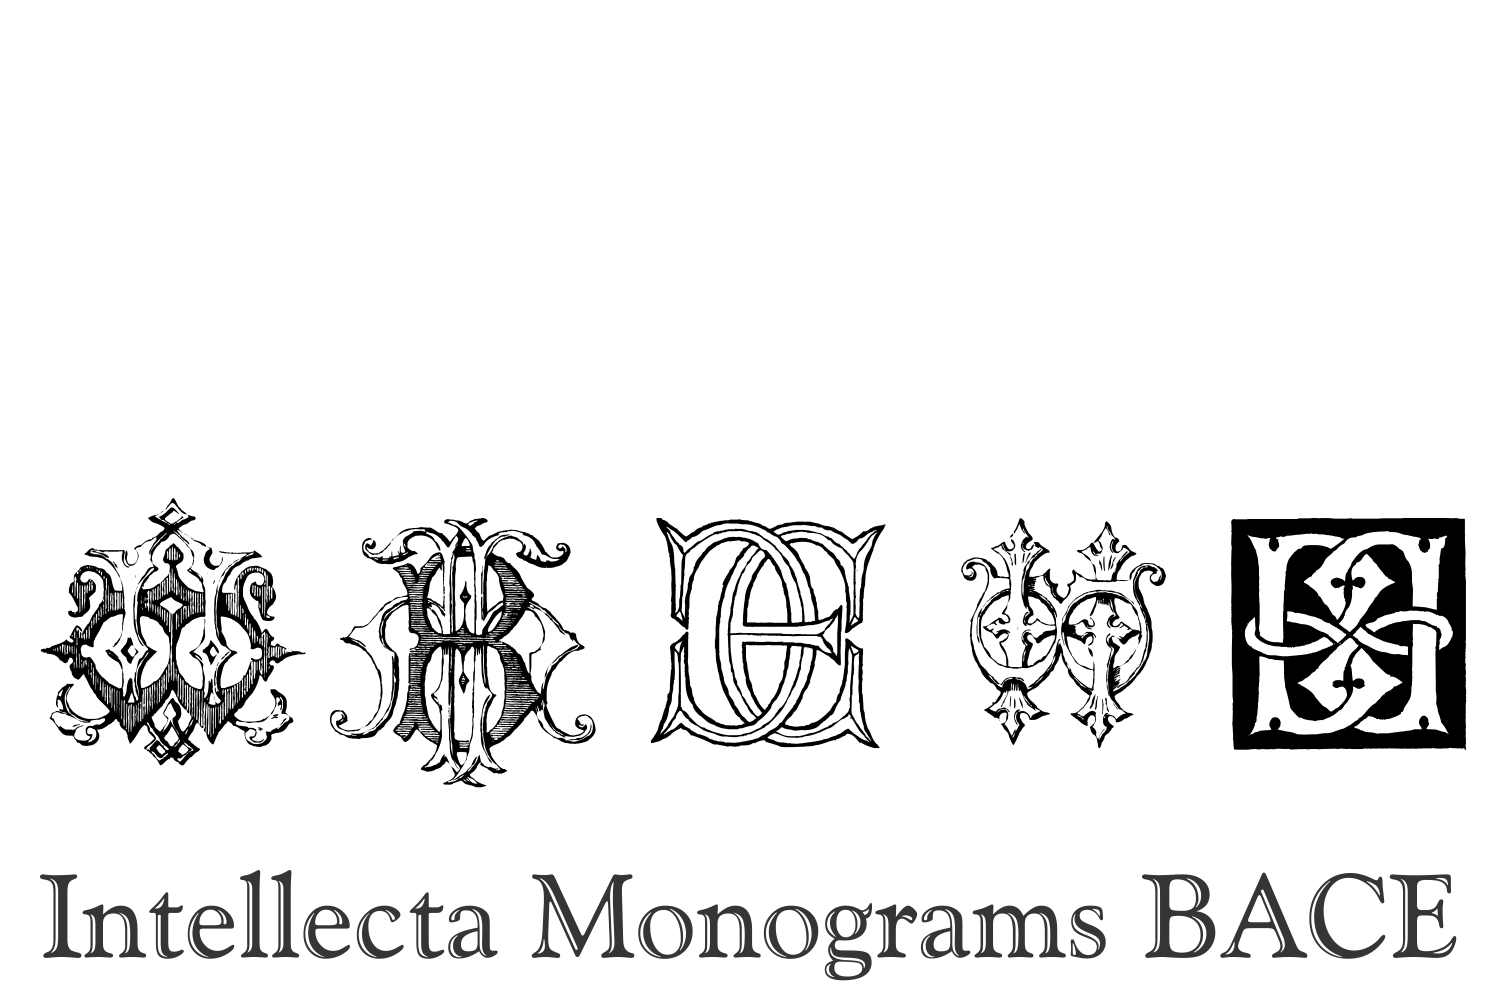 Intellecta Monograms BACE example image 5